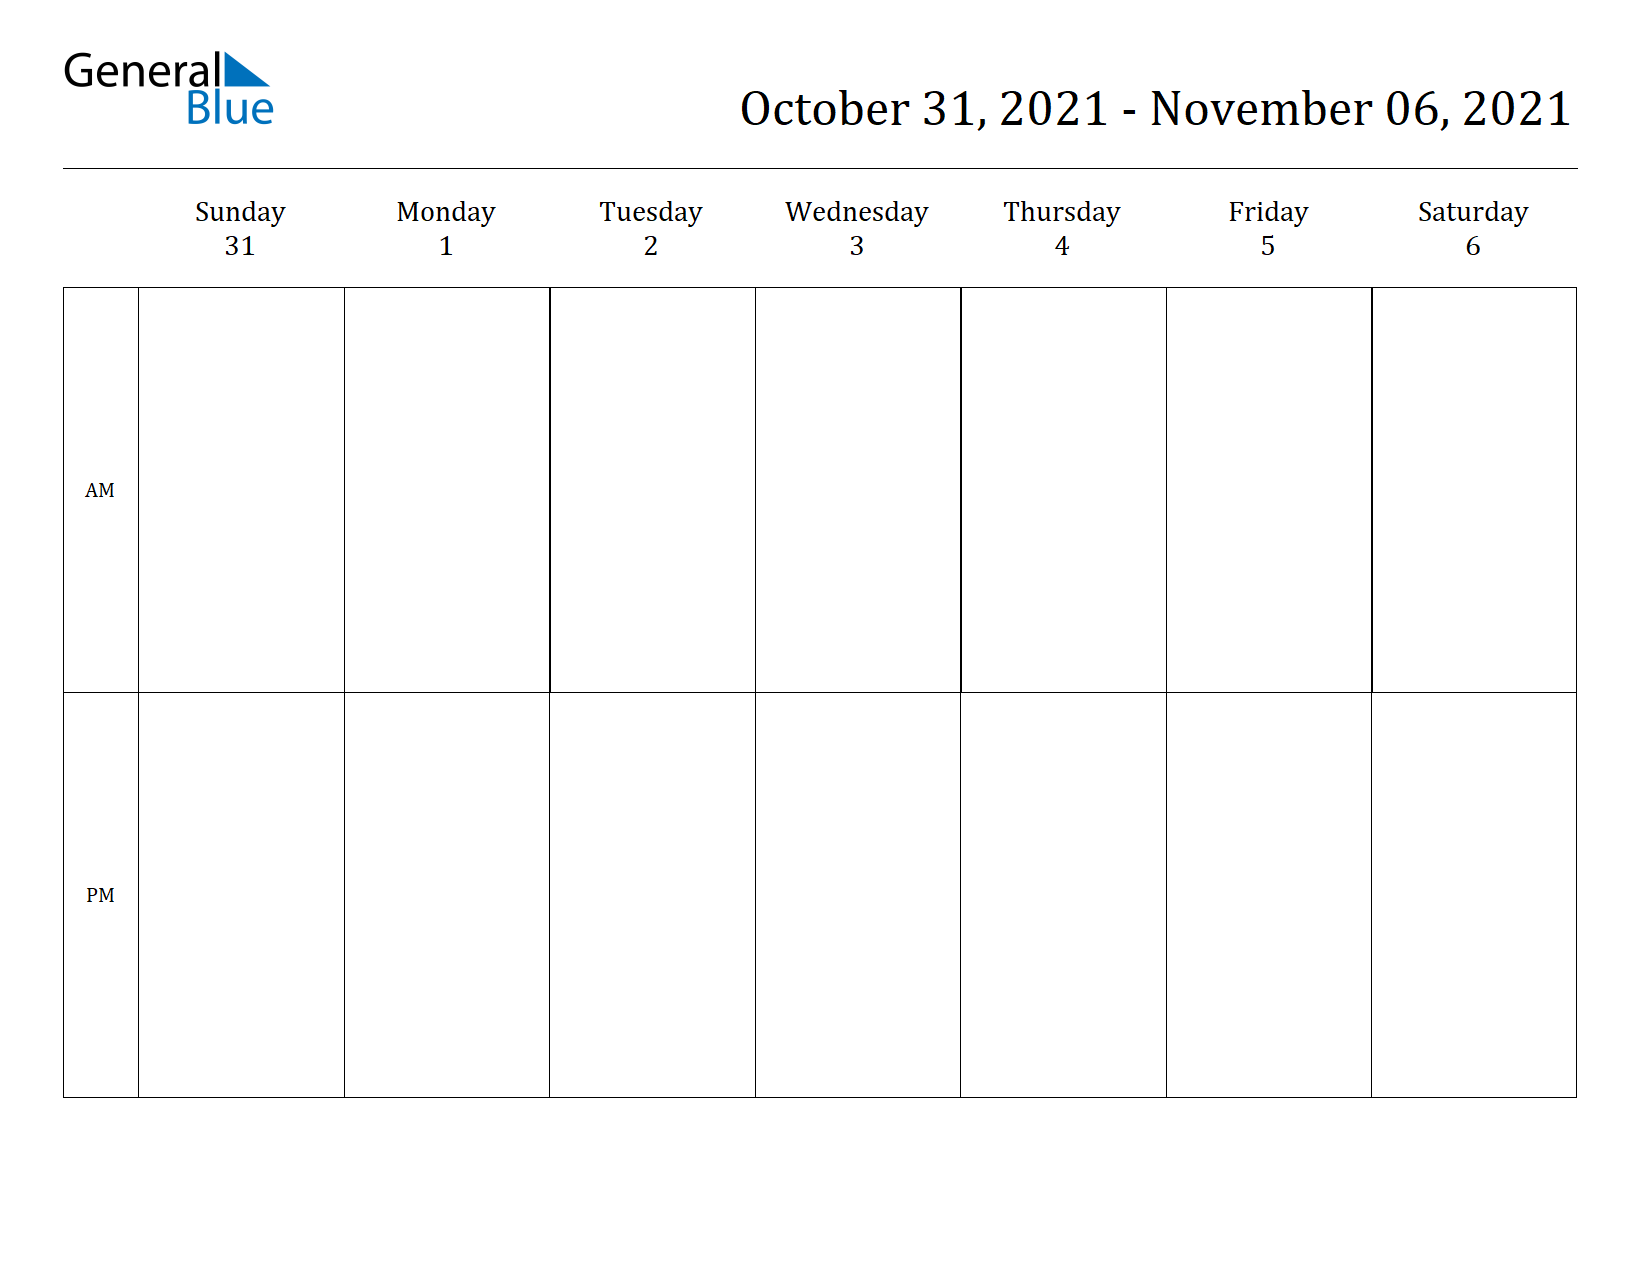 Weekly Calendar for Oct 31, 2021 to Nov 06, 2021